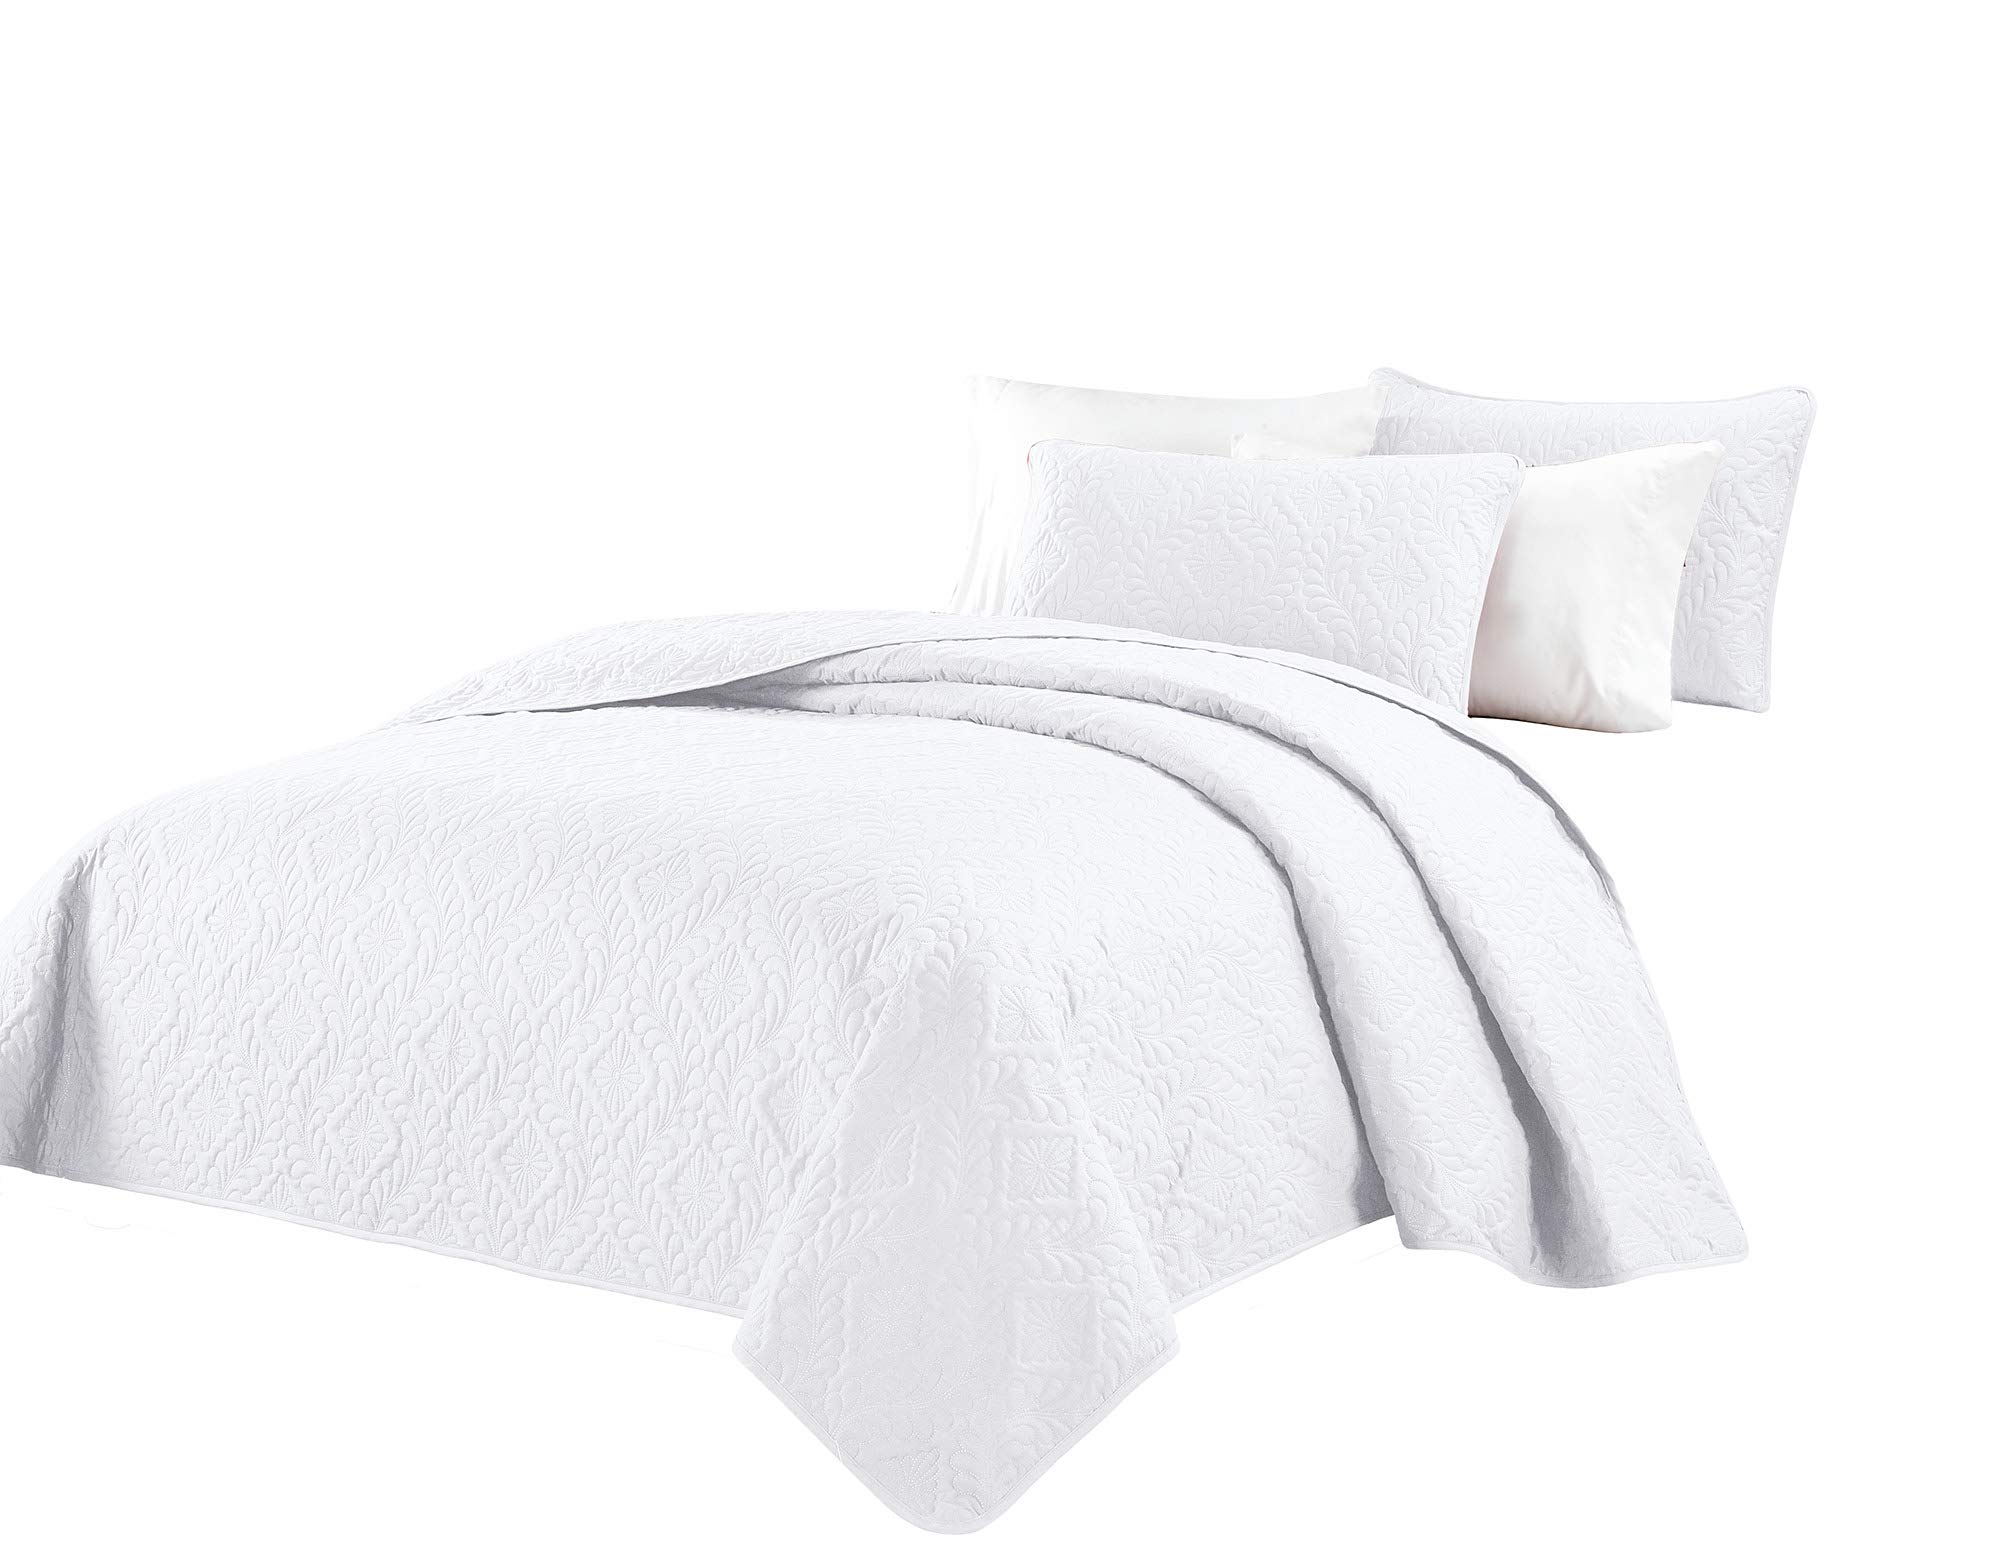 Fancy Collection 3pc King/California King Oversize Bedspread Coverlet Set Embossed Solid White New